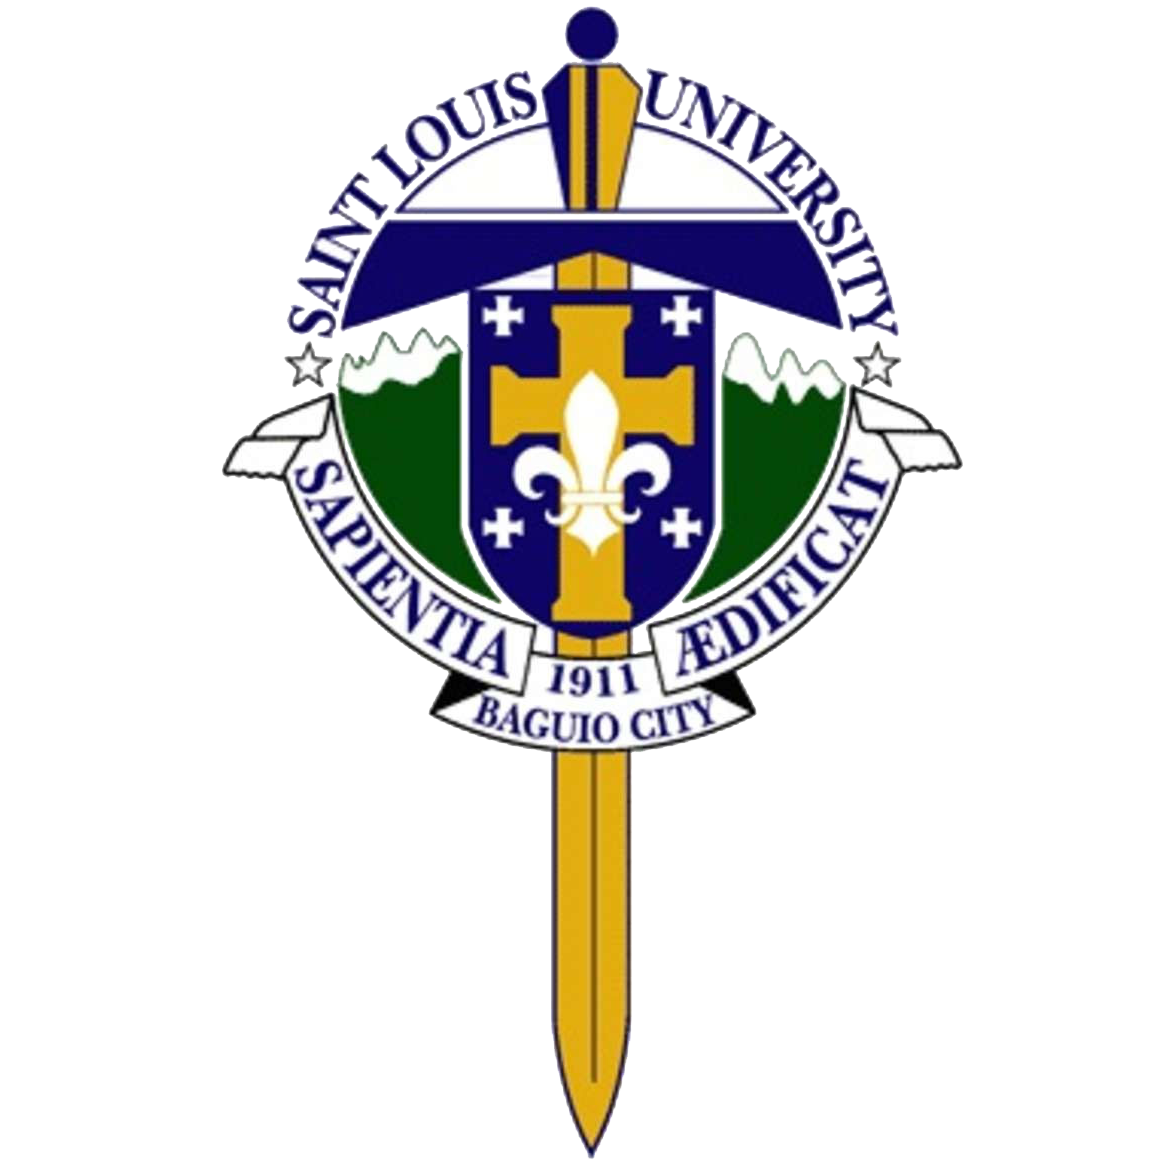 Saint Louis University - Baguio City Logo